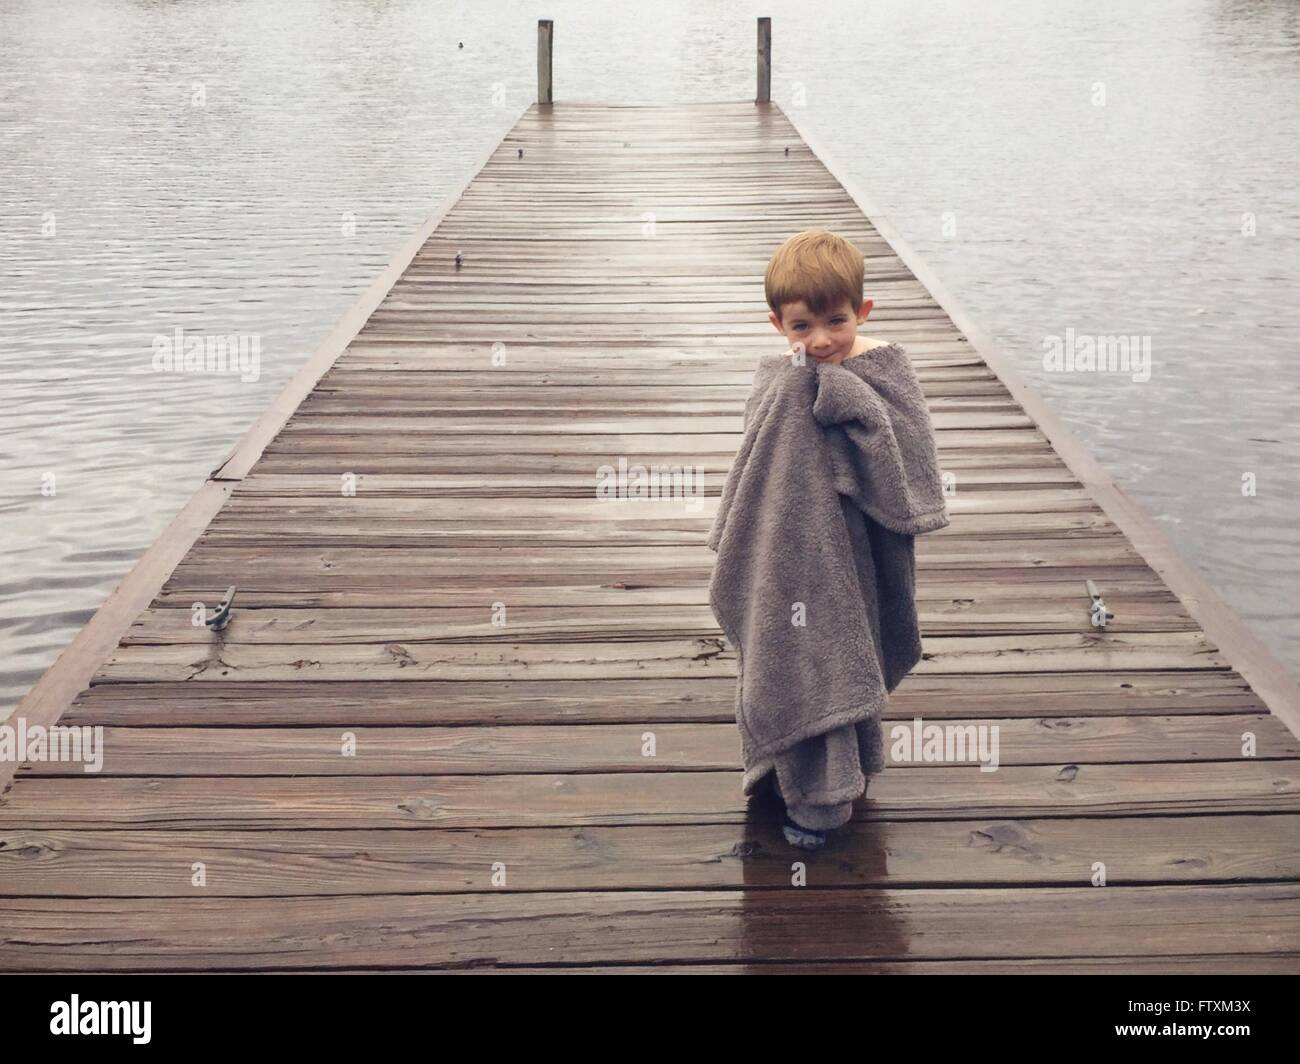 Boy wrapped in blanket, standing on pier - Stock Image